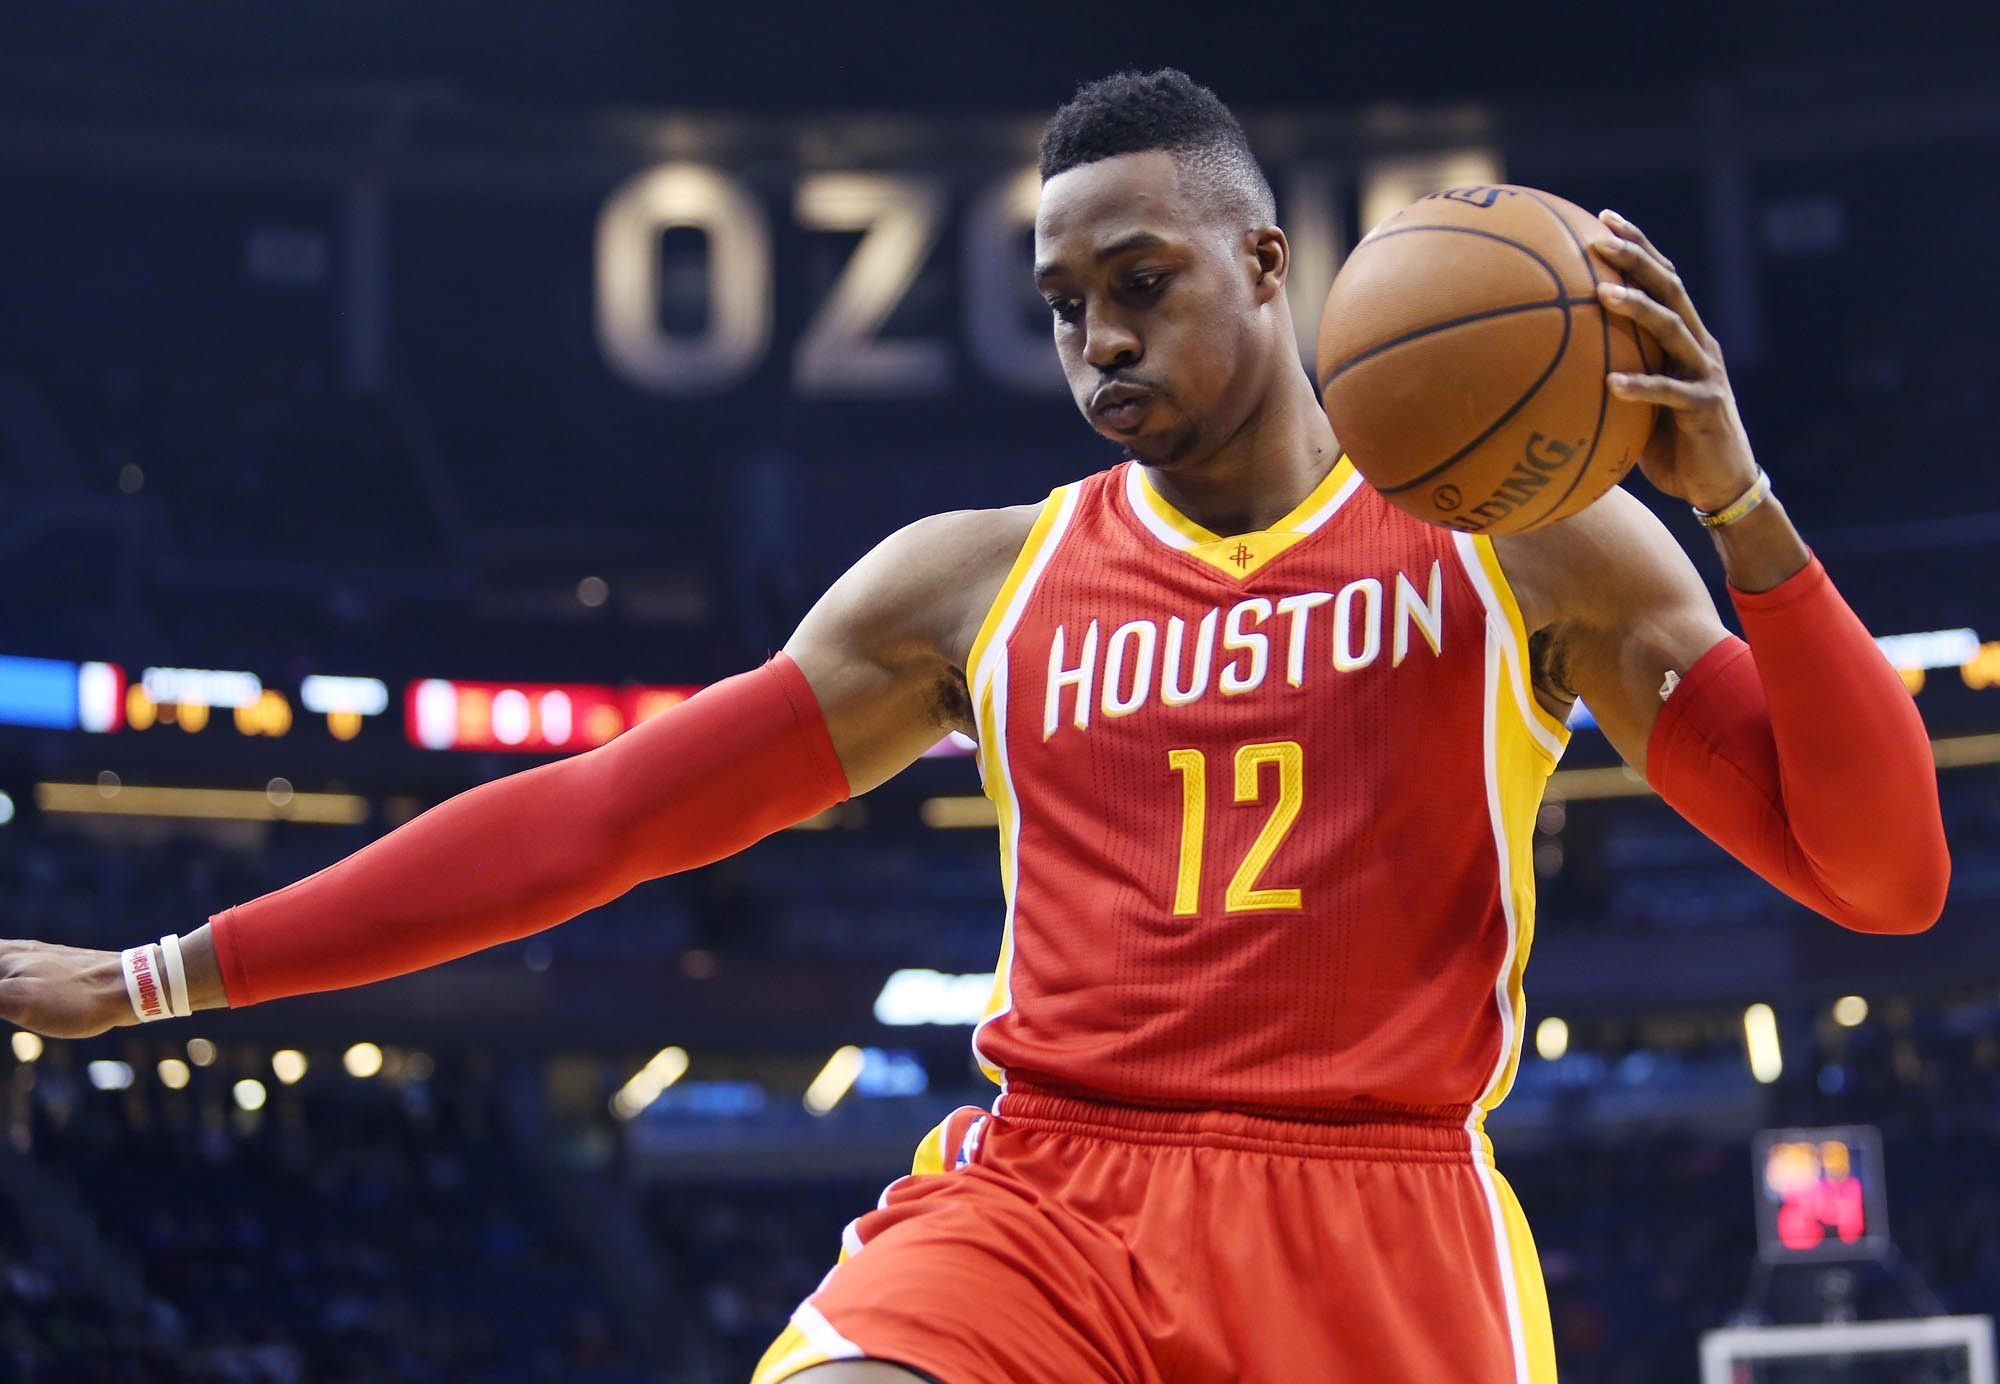 Dwight Howard talks after loss to Orlando Magic - Orlando Sentinel 79ca2a1ec